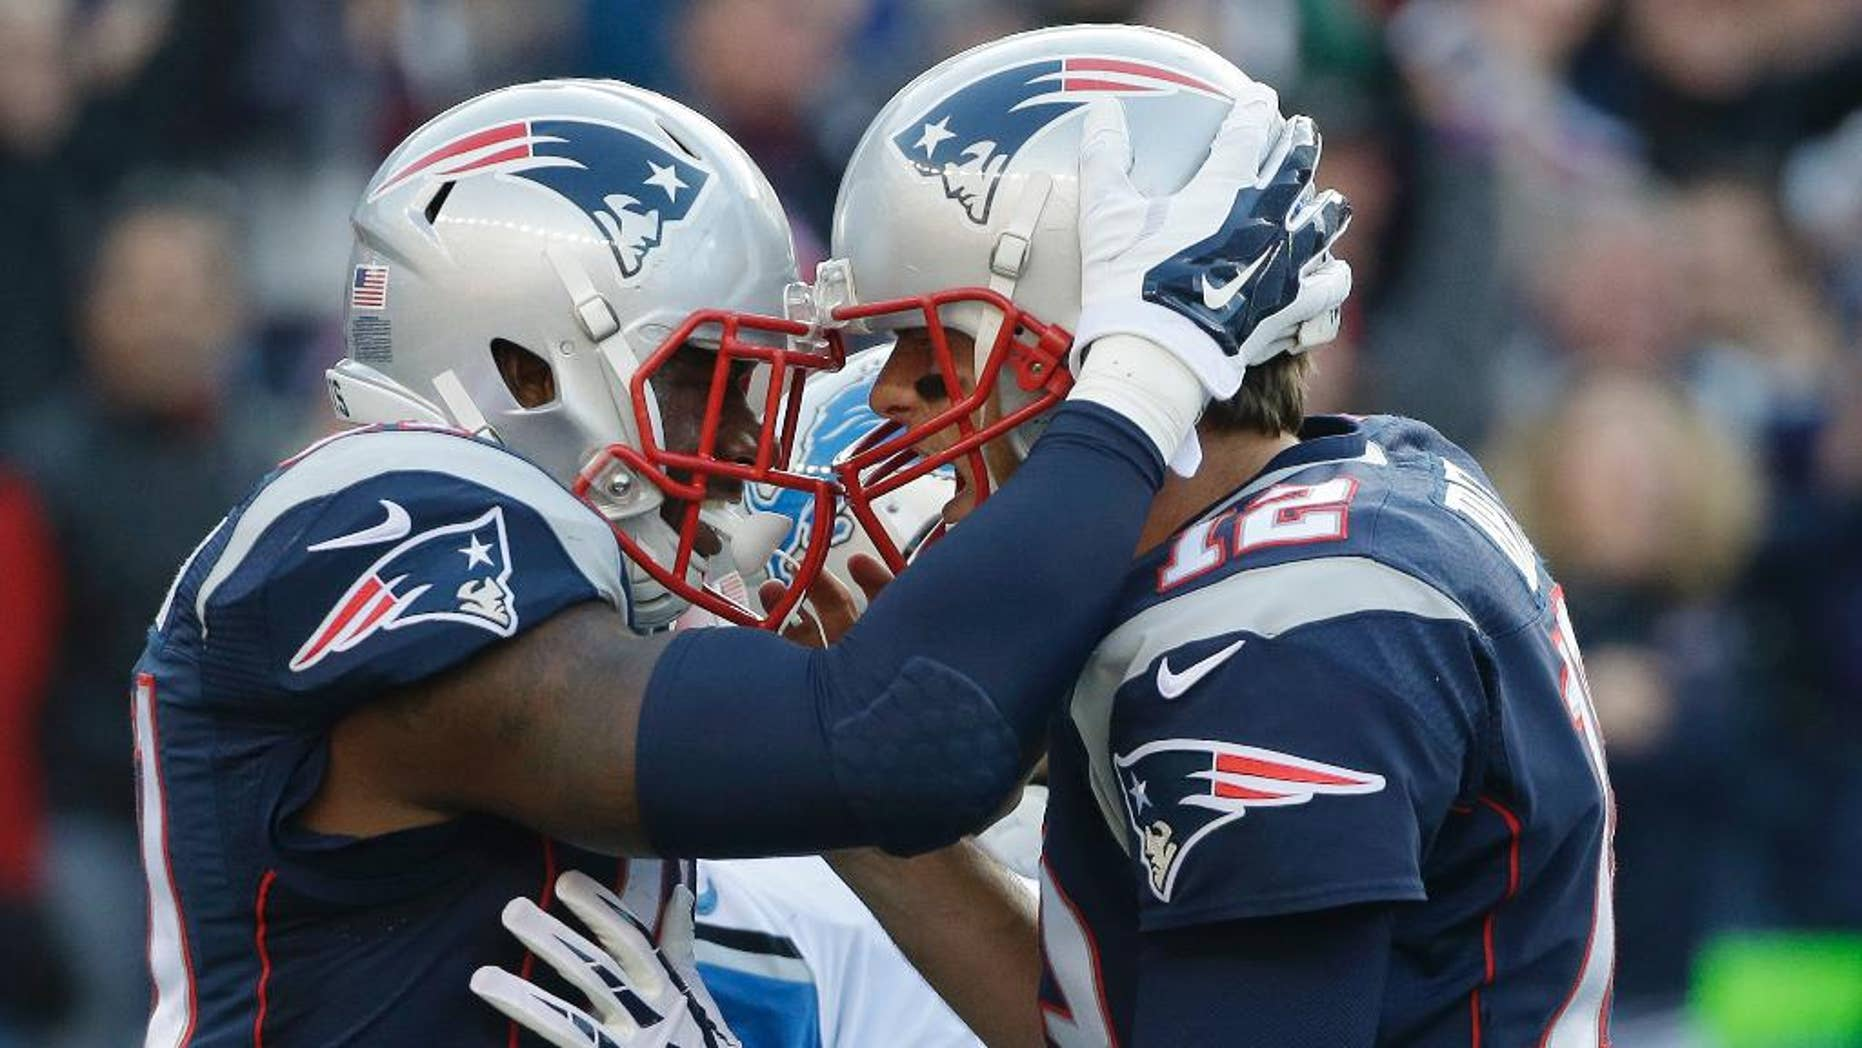 New England Patriots tight end Timothy Wright, left, celebrates after catching his second touchdown pass from Tom Brady, right, in the first half of an NFL football game against the Detroit Lions, Sunday, Nov. 23, 2014, in Foxborough, Mass. (AP Photo/Steven Senne)